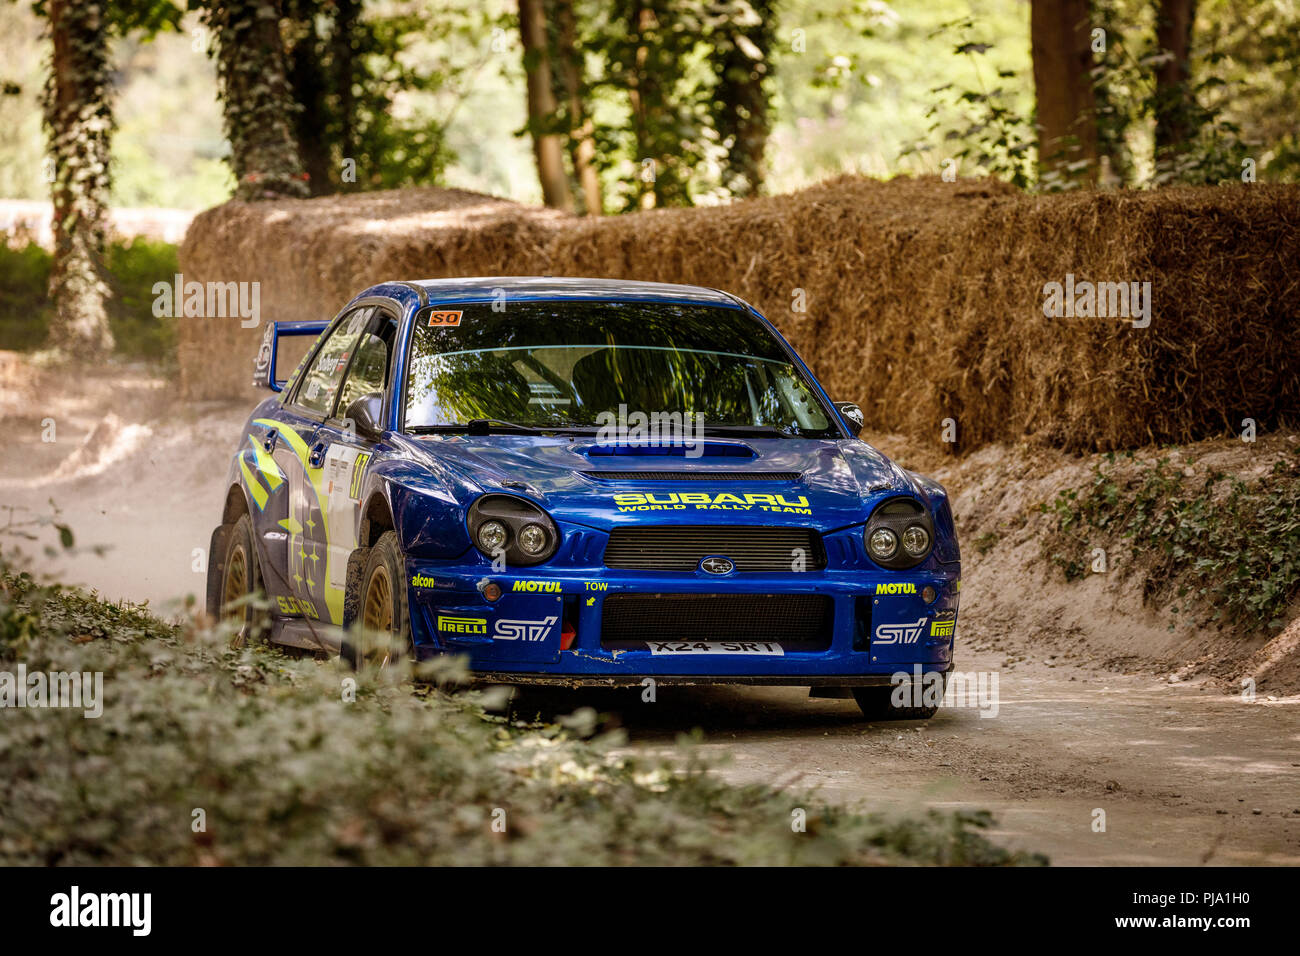 2002 Subaru Impreza WRC with driver Petter Solberg on the forest rally stage at the 2018 Goodwood Festival of Speed, Sussex, UK. - Stock Image